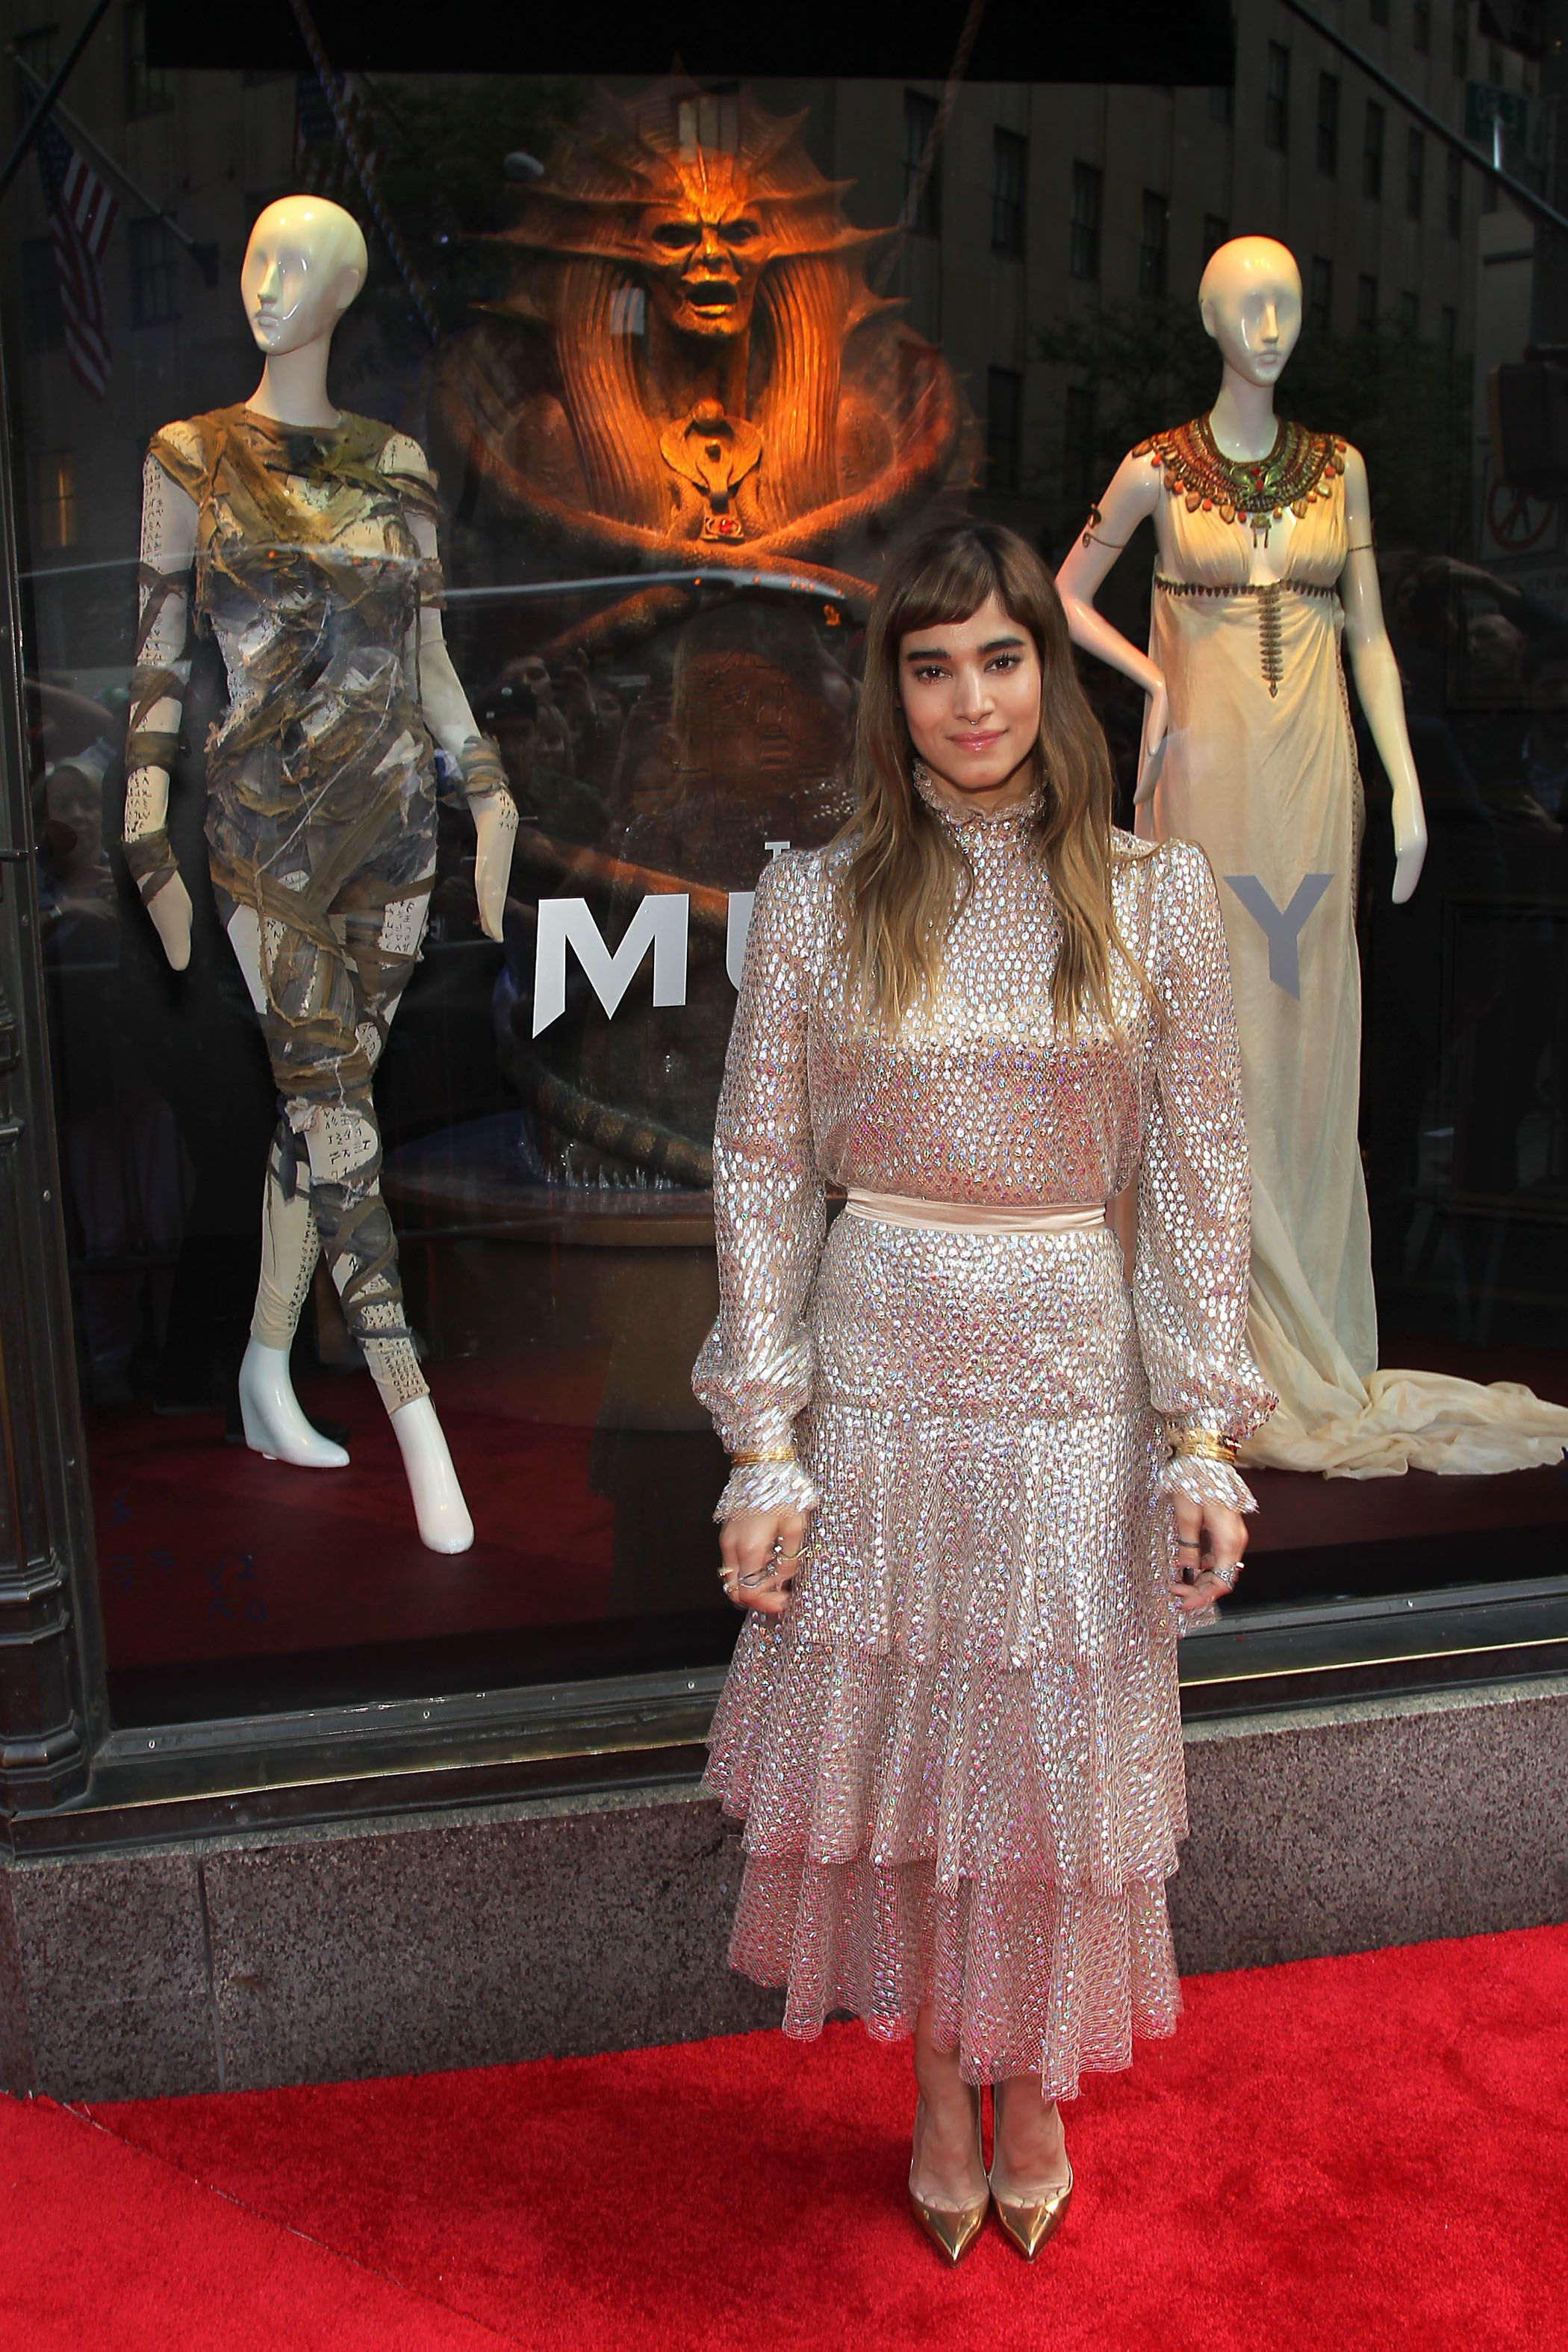 The Mummy S Sofia Boutella Talks Dressing For The Red Carpet And Working With Tom Cruise Sofia Boutella Egyptian Clothing Sofia